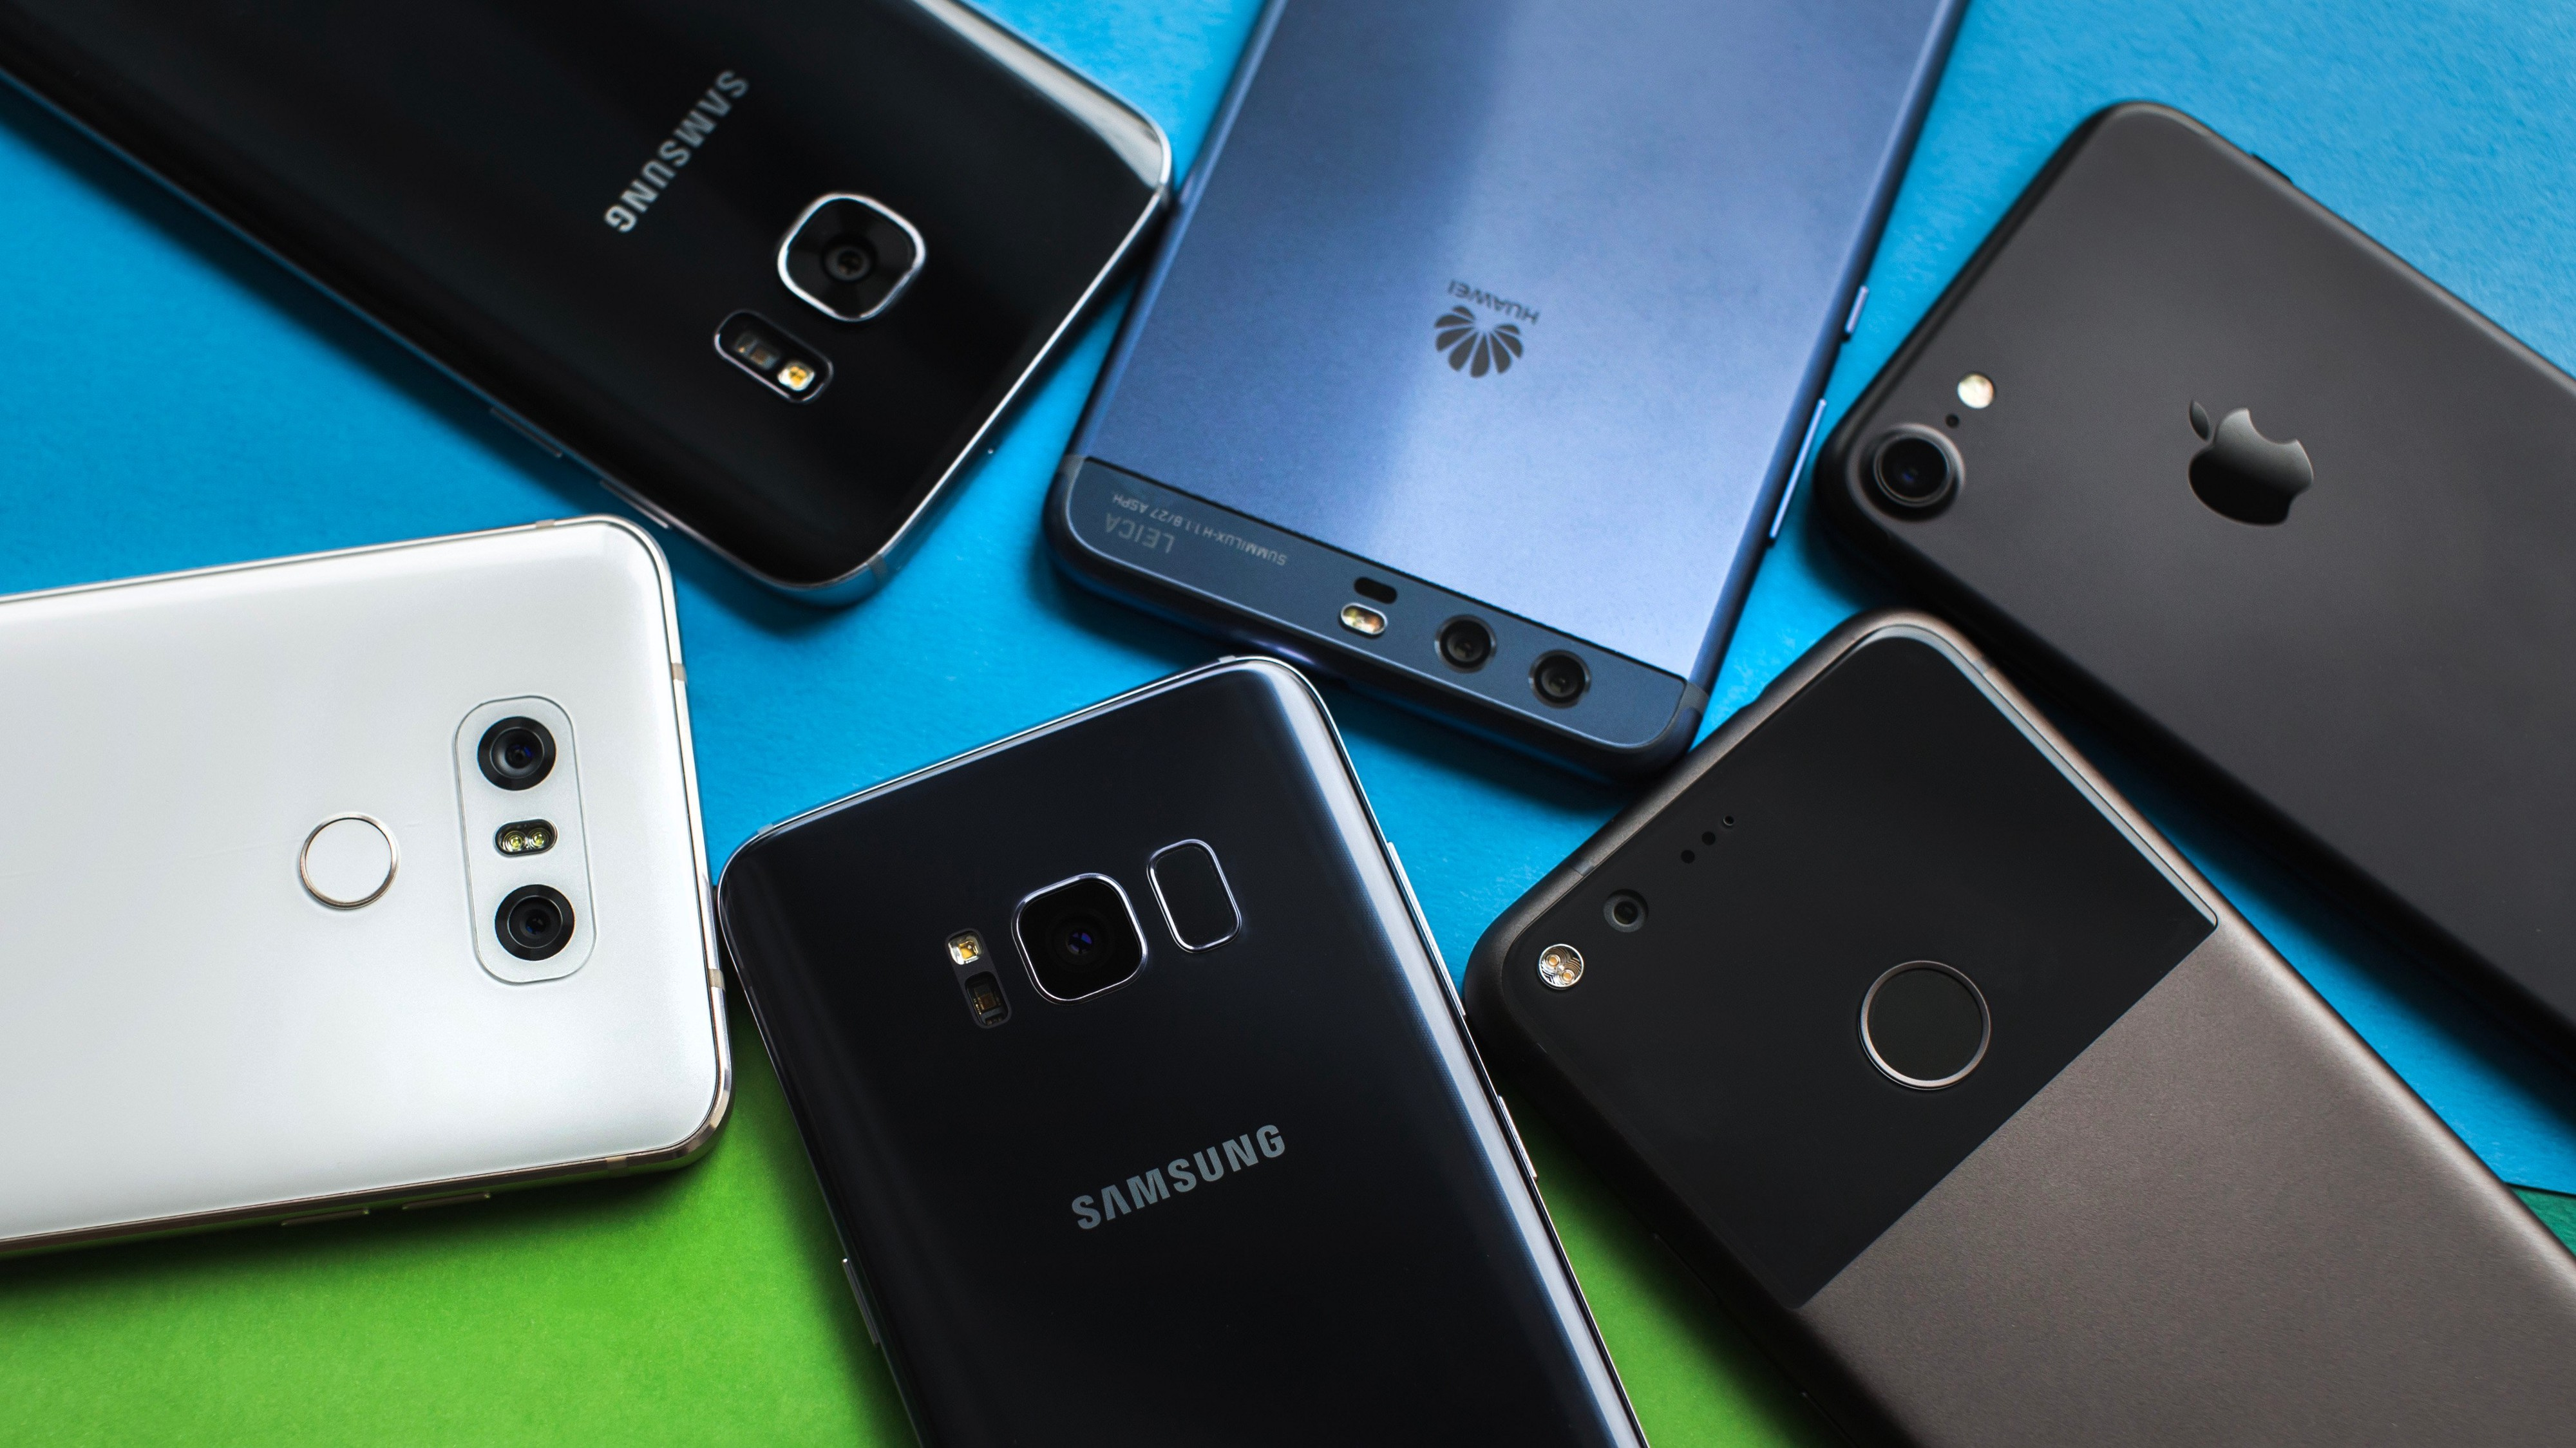 Top 5 Smartphone Companies based on their products